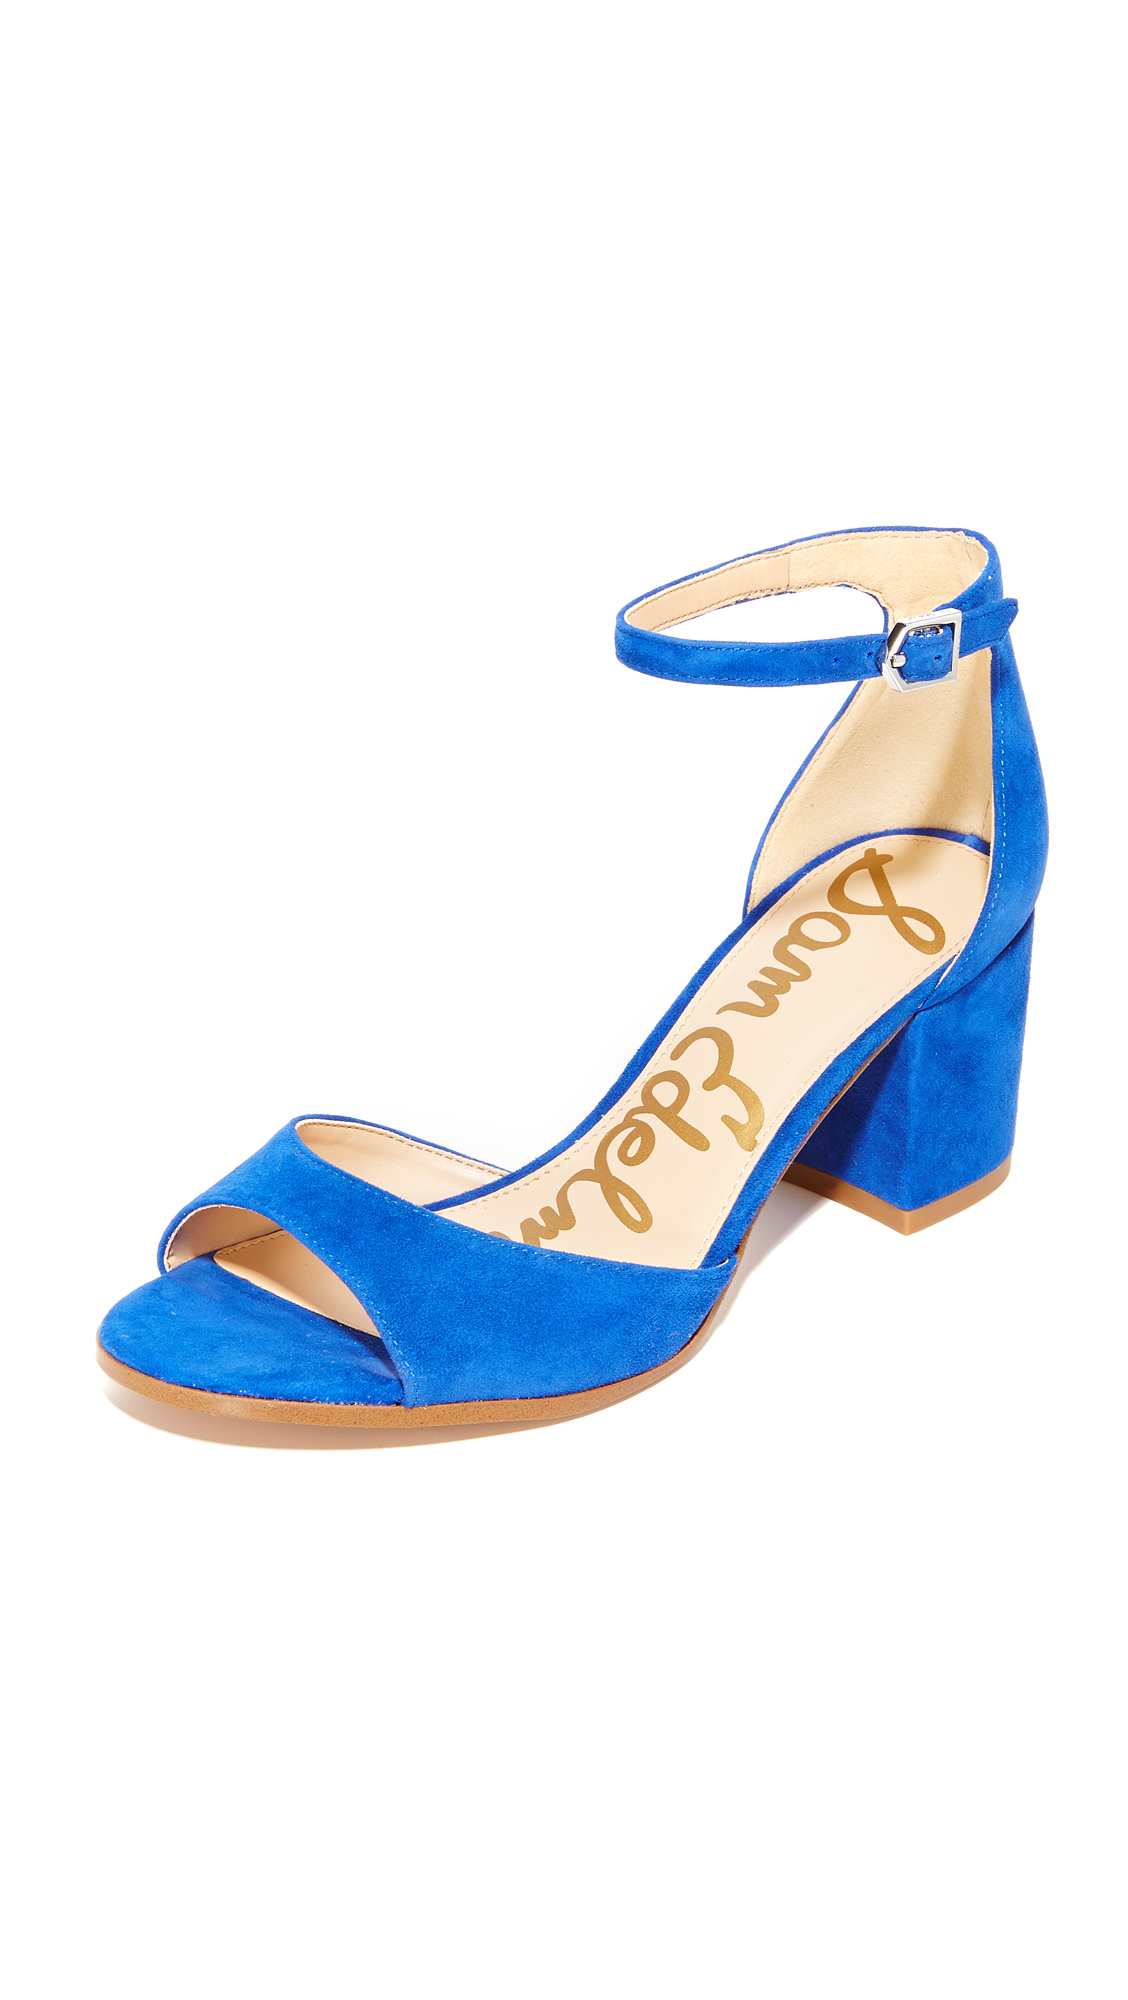 Photo of Sam Edelman Susie City Heels Nautical Blue - Sam Edelman online